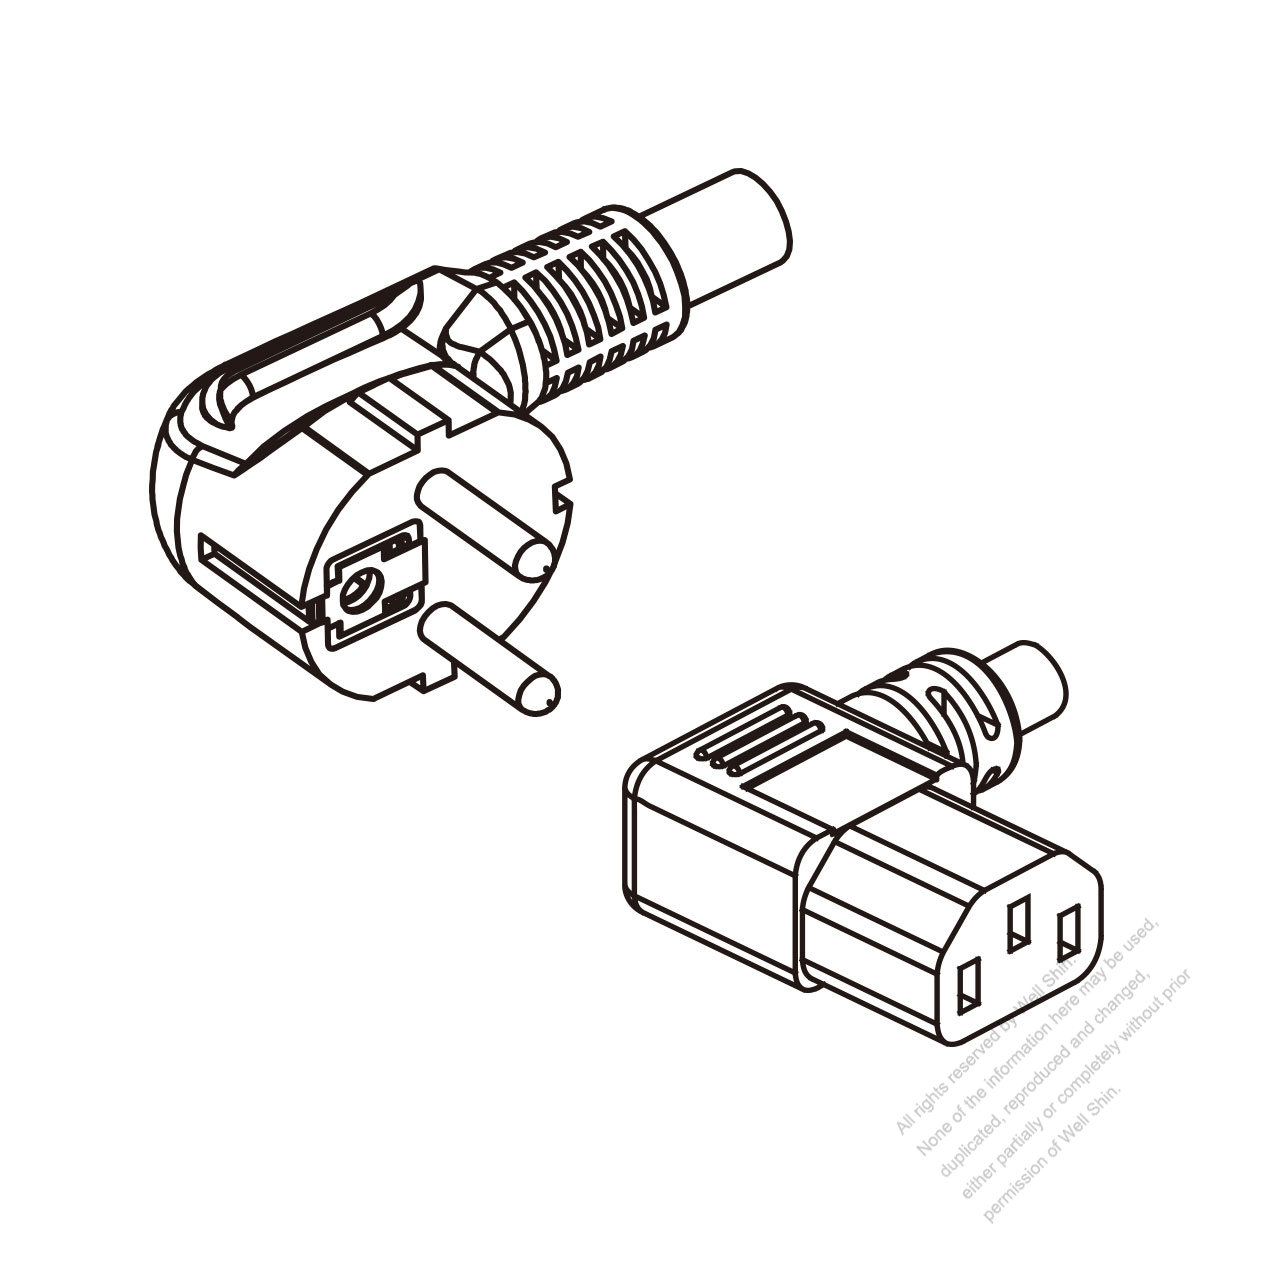 Europe 3 Pin Angle Plug To Iec 320 C13 Left Ac Power Cord Wiring Color Diagram